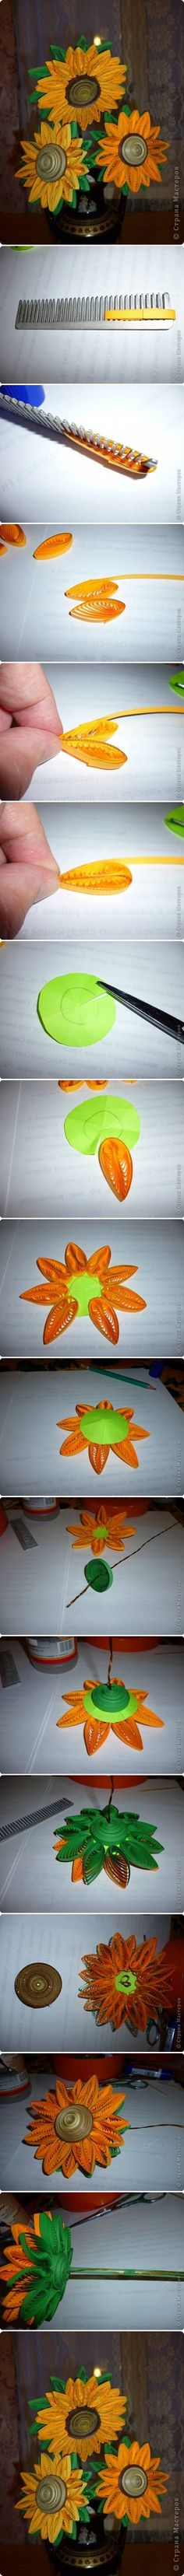 DIY Quilling Sunflower